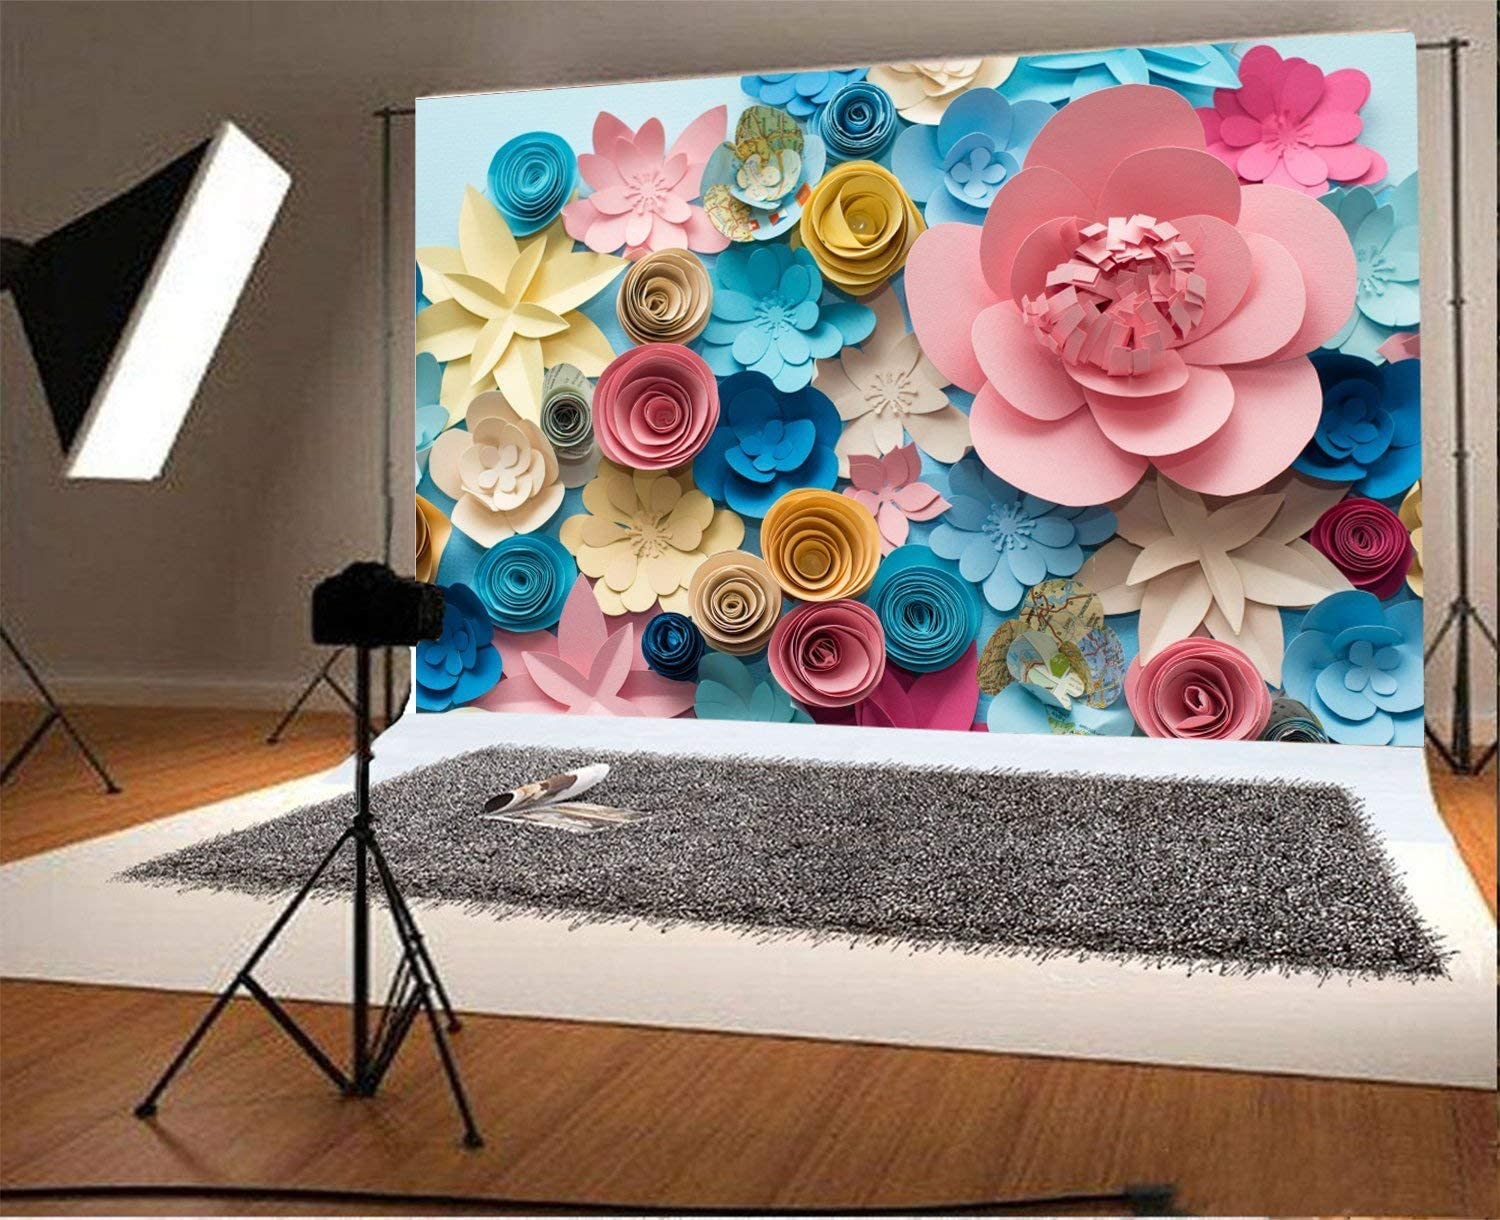 15x10ft Paper Flowers for Baby Shower Backdrop Adults Kids Girls Portrait Birthday Party Events Photoshoot Prop Wallpaper 3D Flower Wall Floral Photography Background Cloth Photo Studio Props